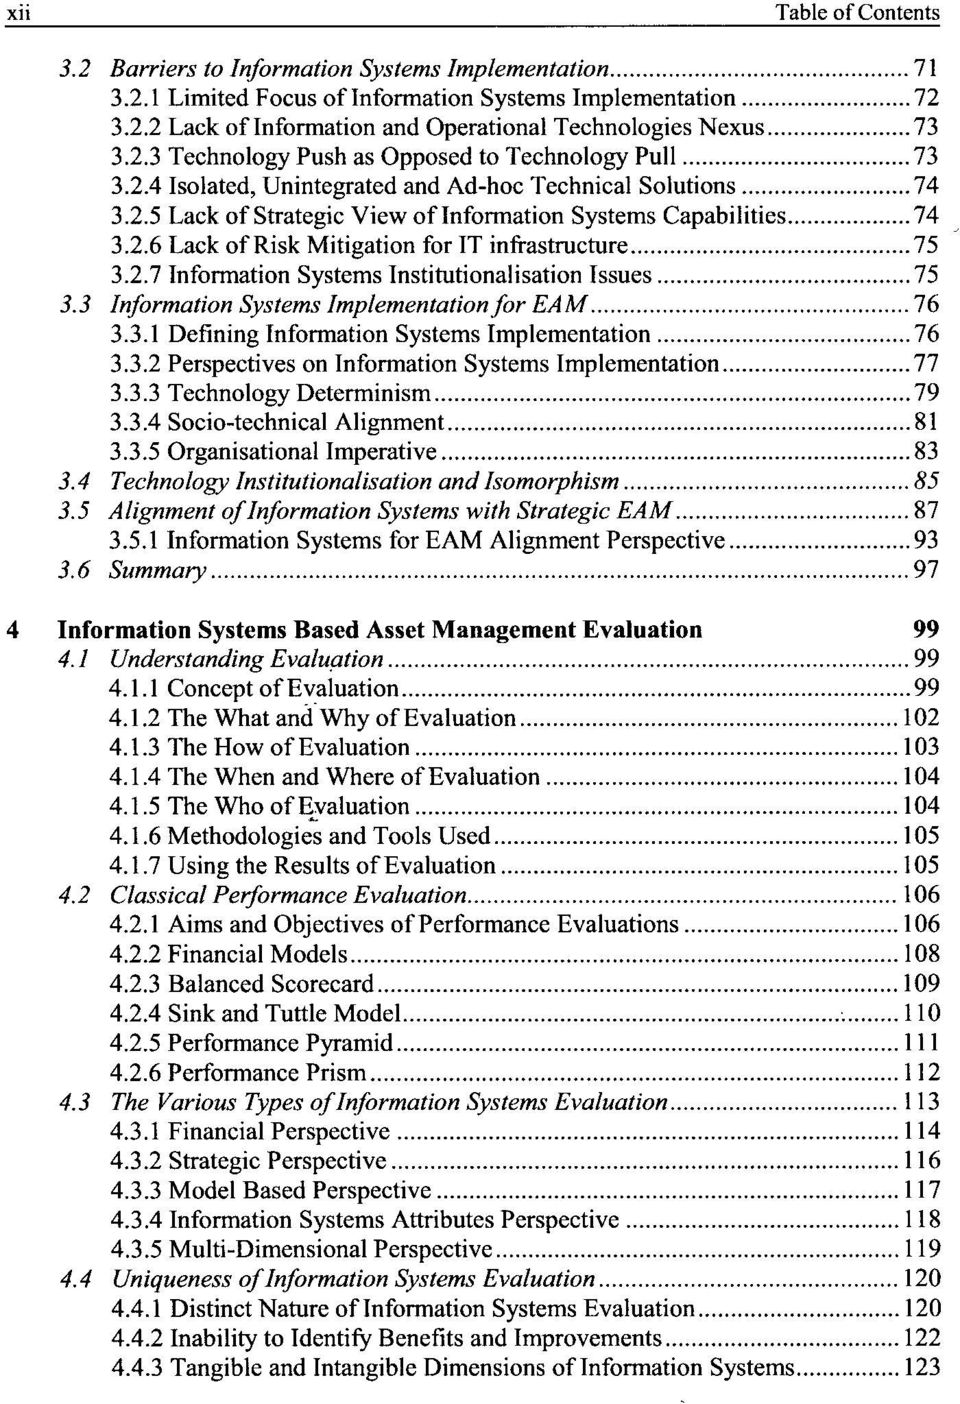 3 Information Systems Implementation for EAM 76 3.3.1 Defining Information Systems Implementation 76 3.3.2 Perspectives on Information Systems Implementation 77 3.3.3 Technology Determinism 79 3.3.4 Socio-technical Alignment 81 3.